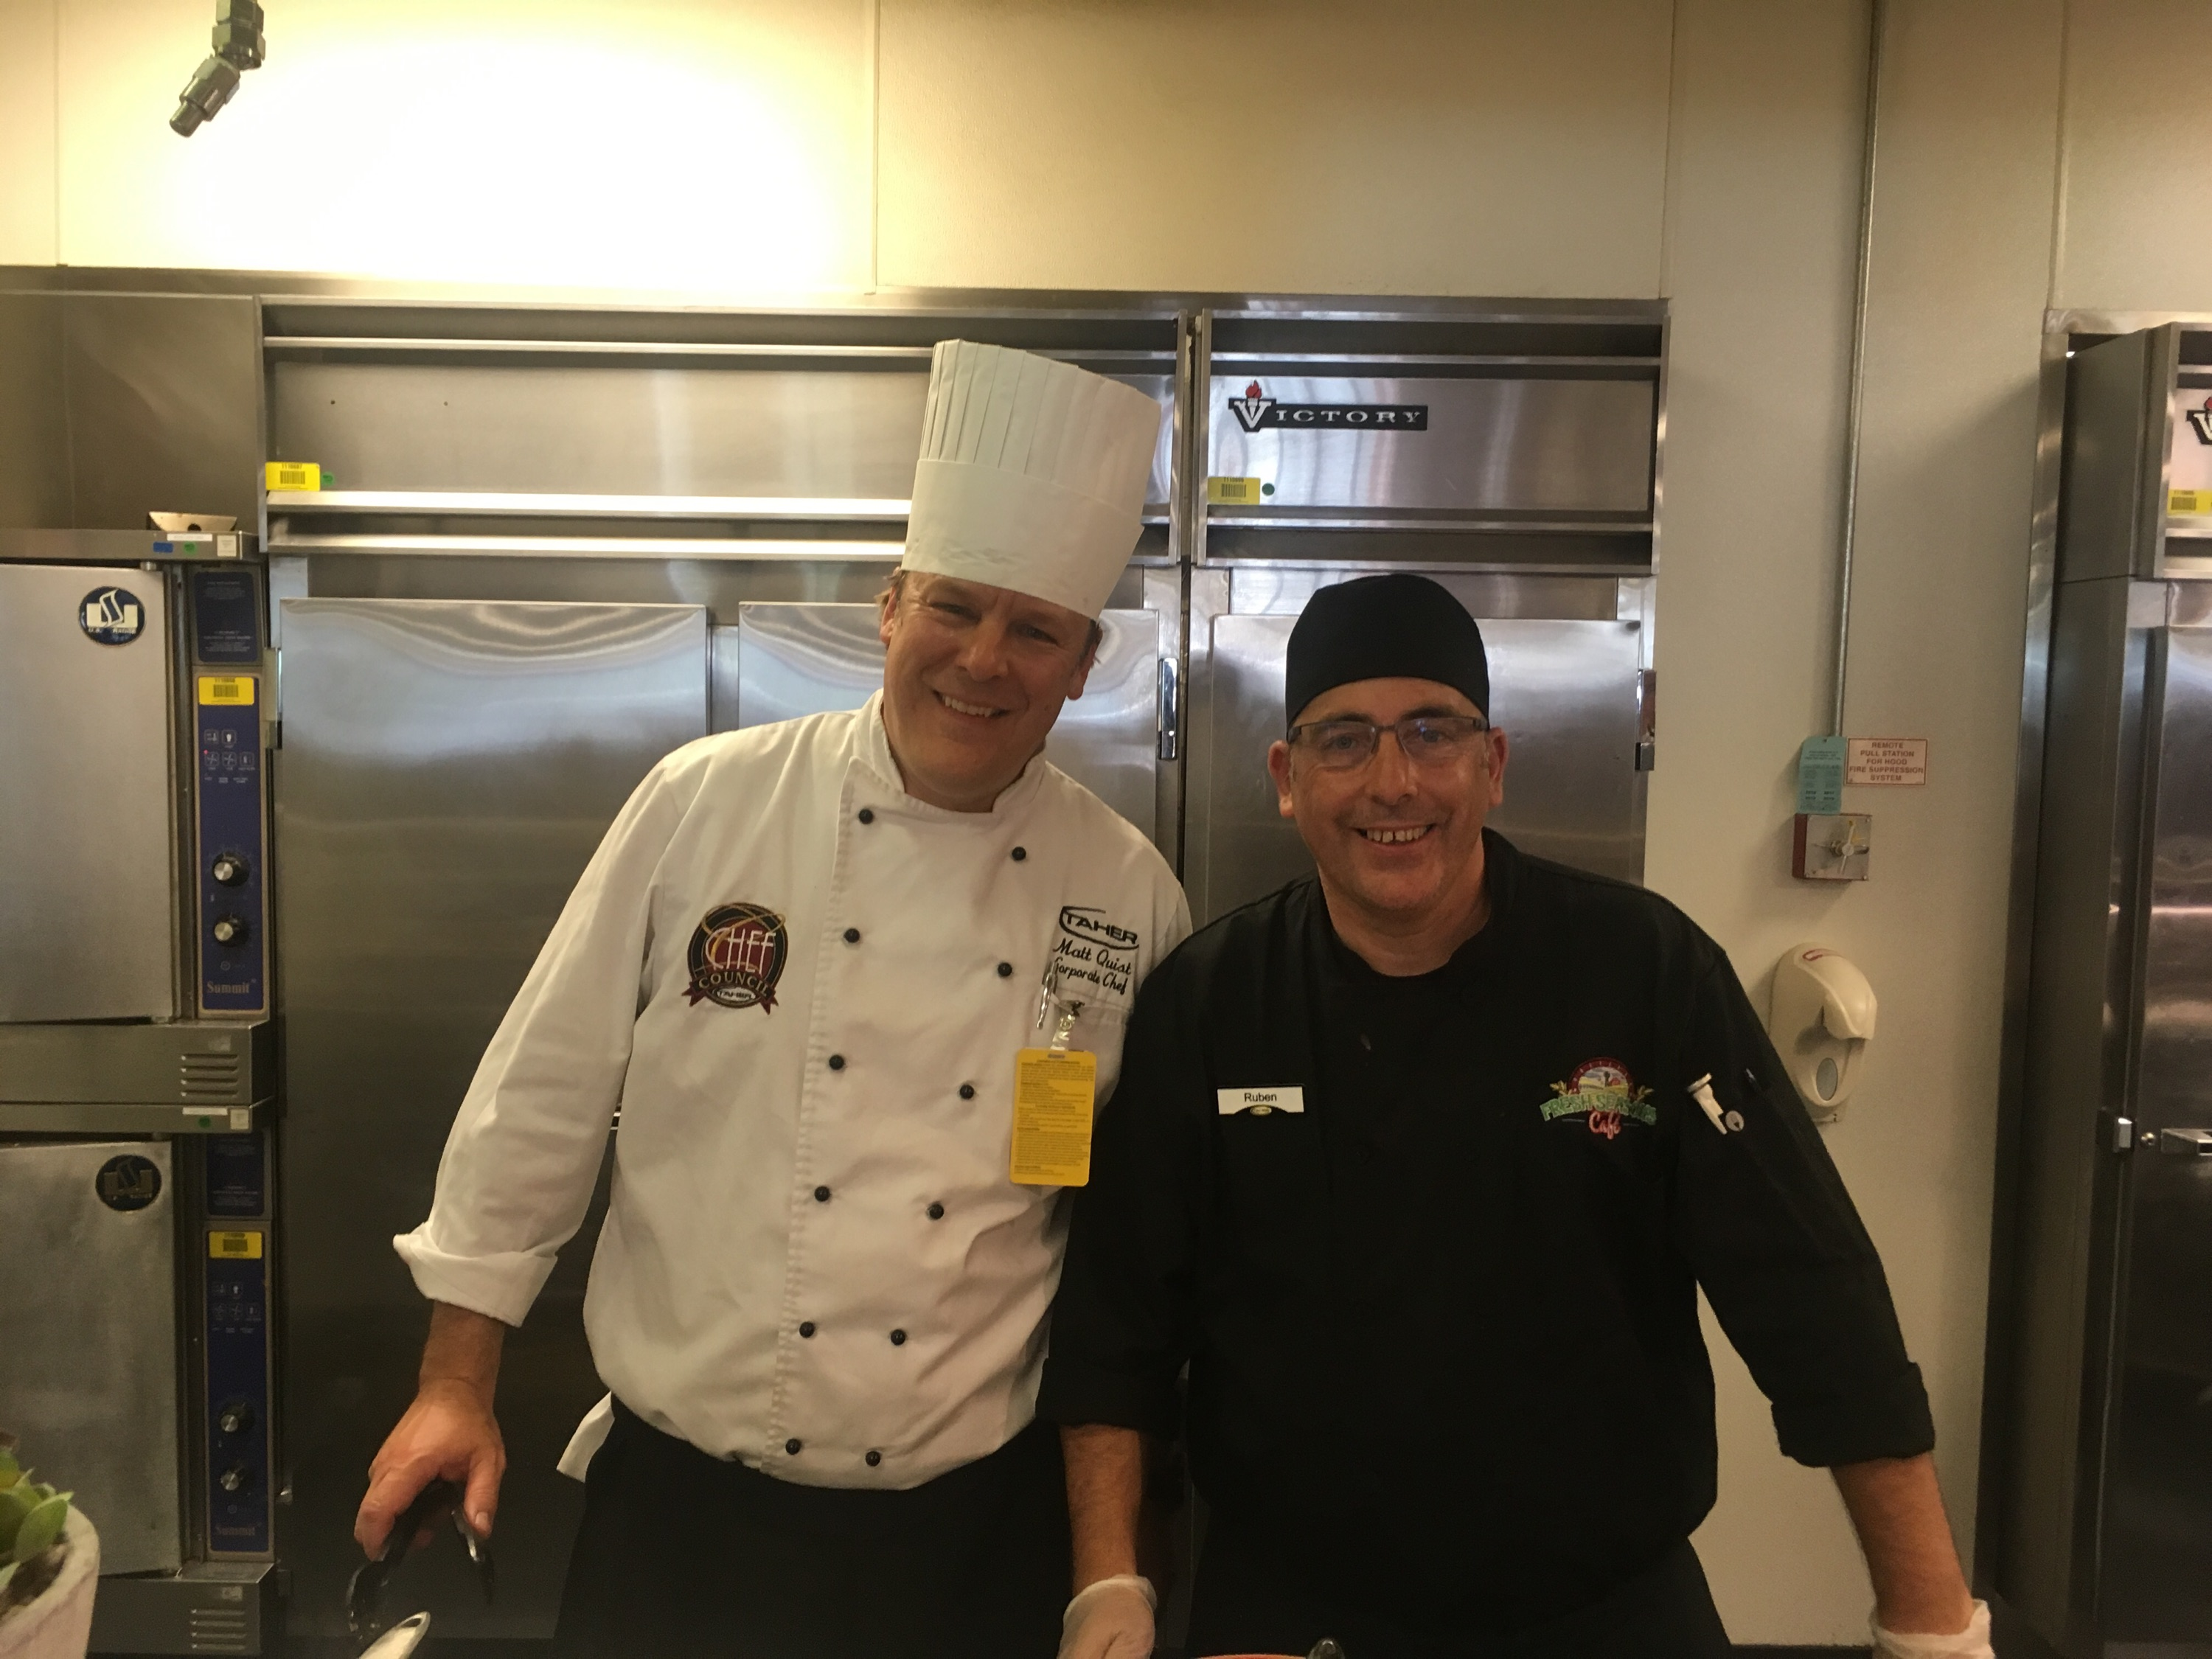 Chef Matt and Ruben at the World Cuisne station